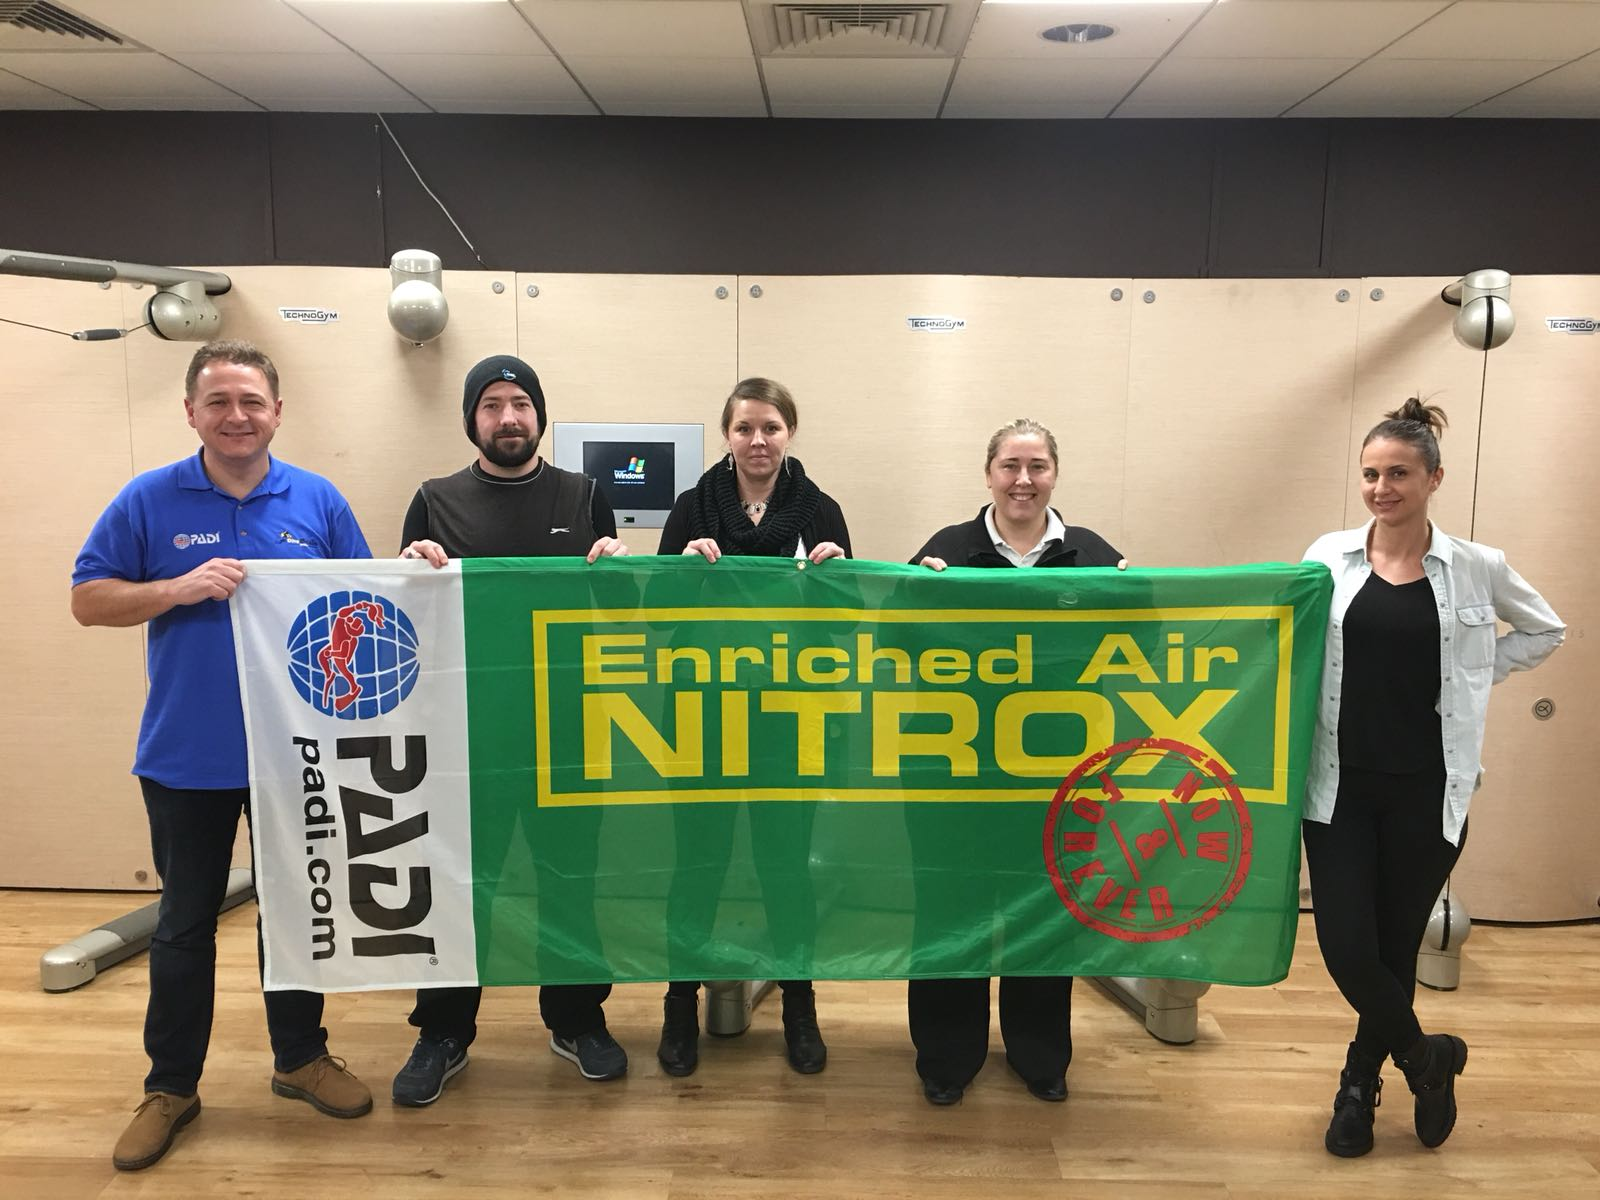 Enriched Air Nitrox Divers